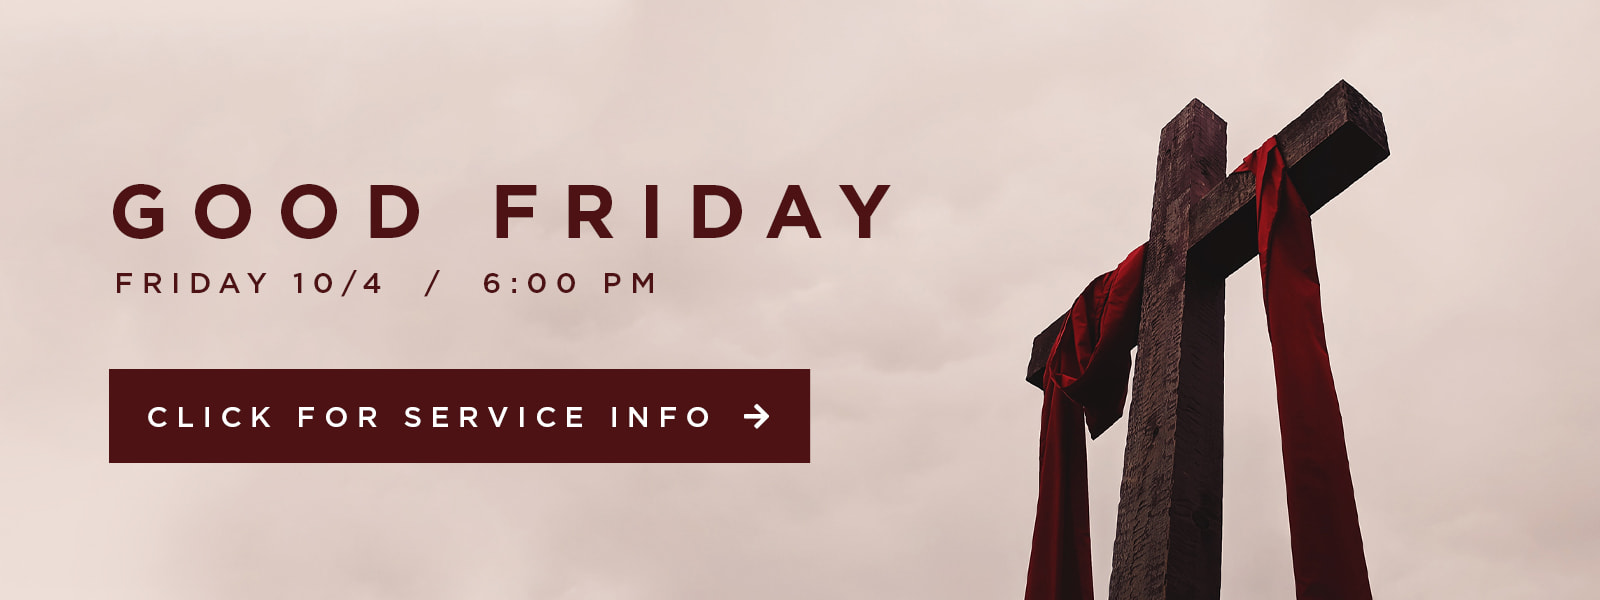 Good Friday Service - Click here for more info